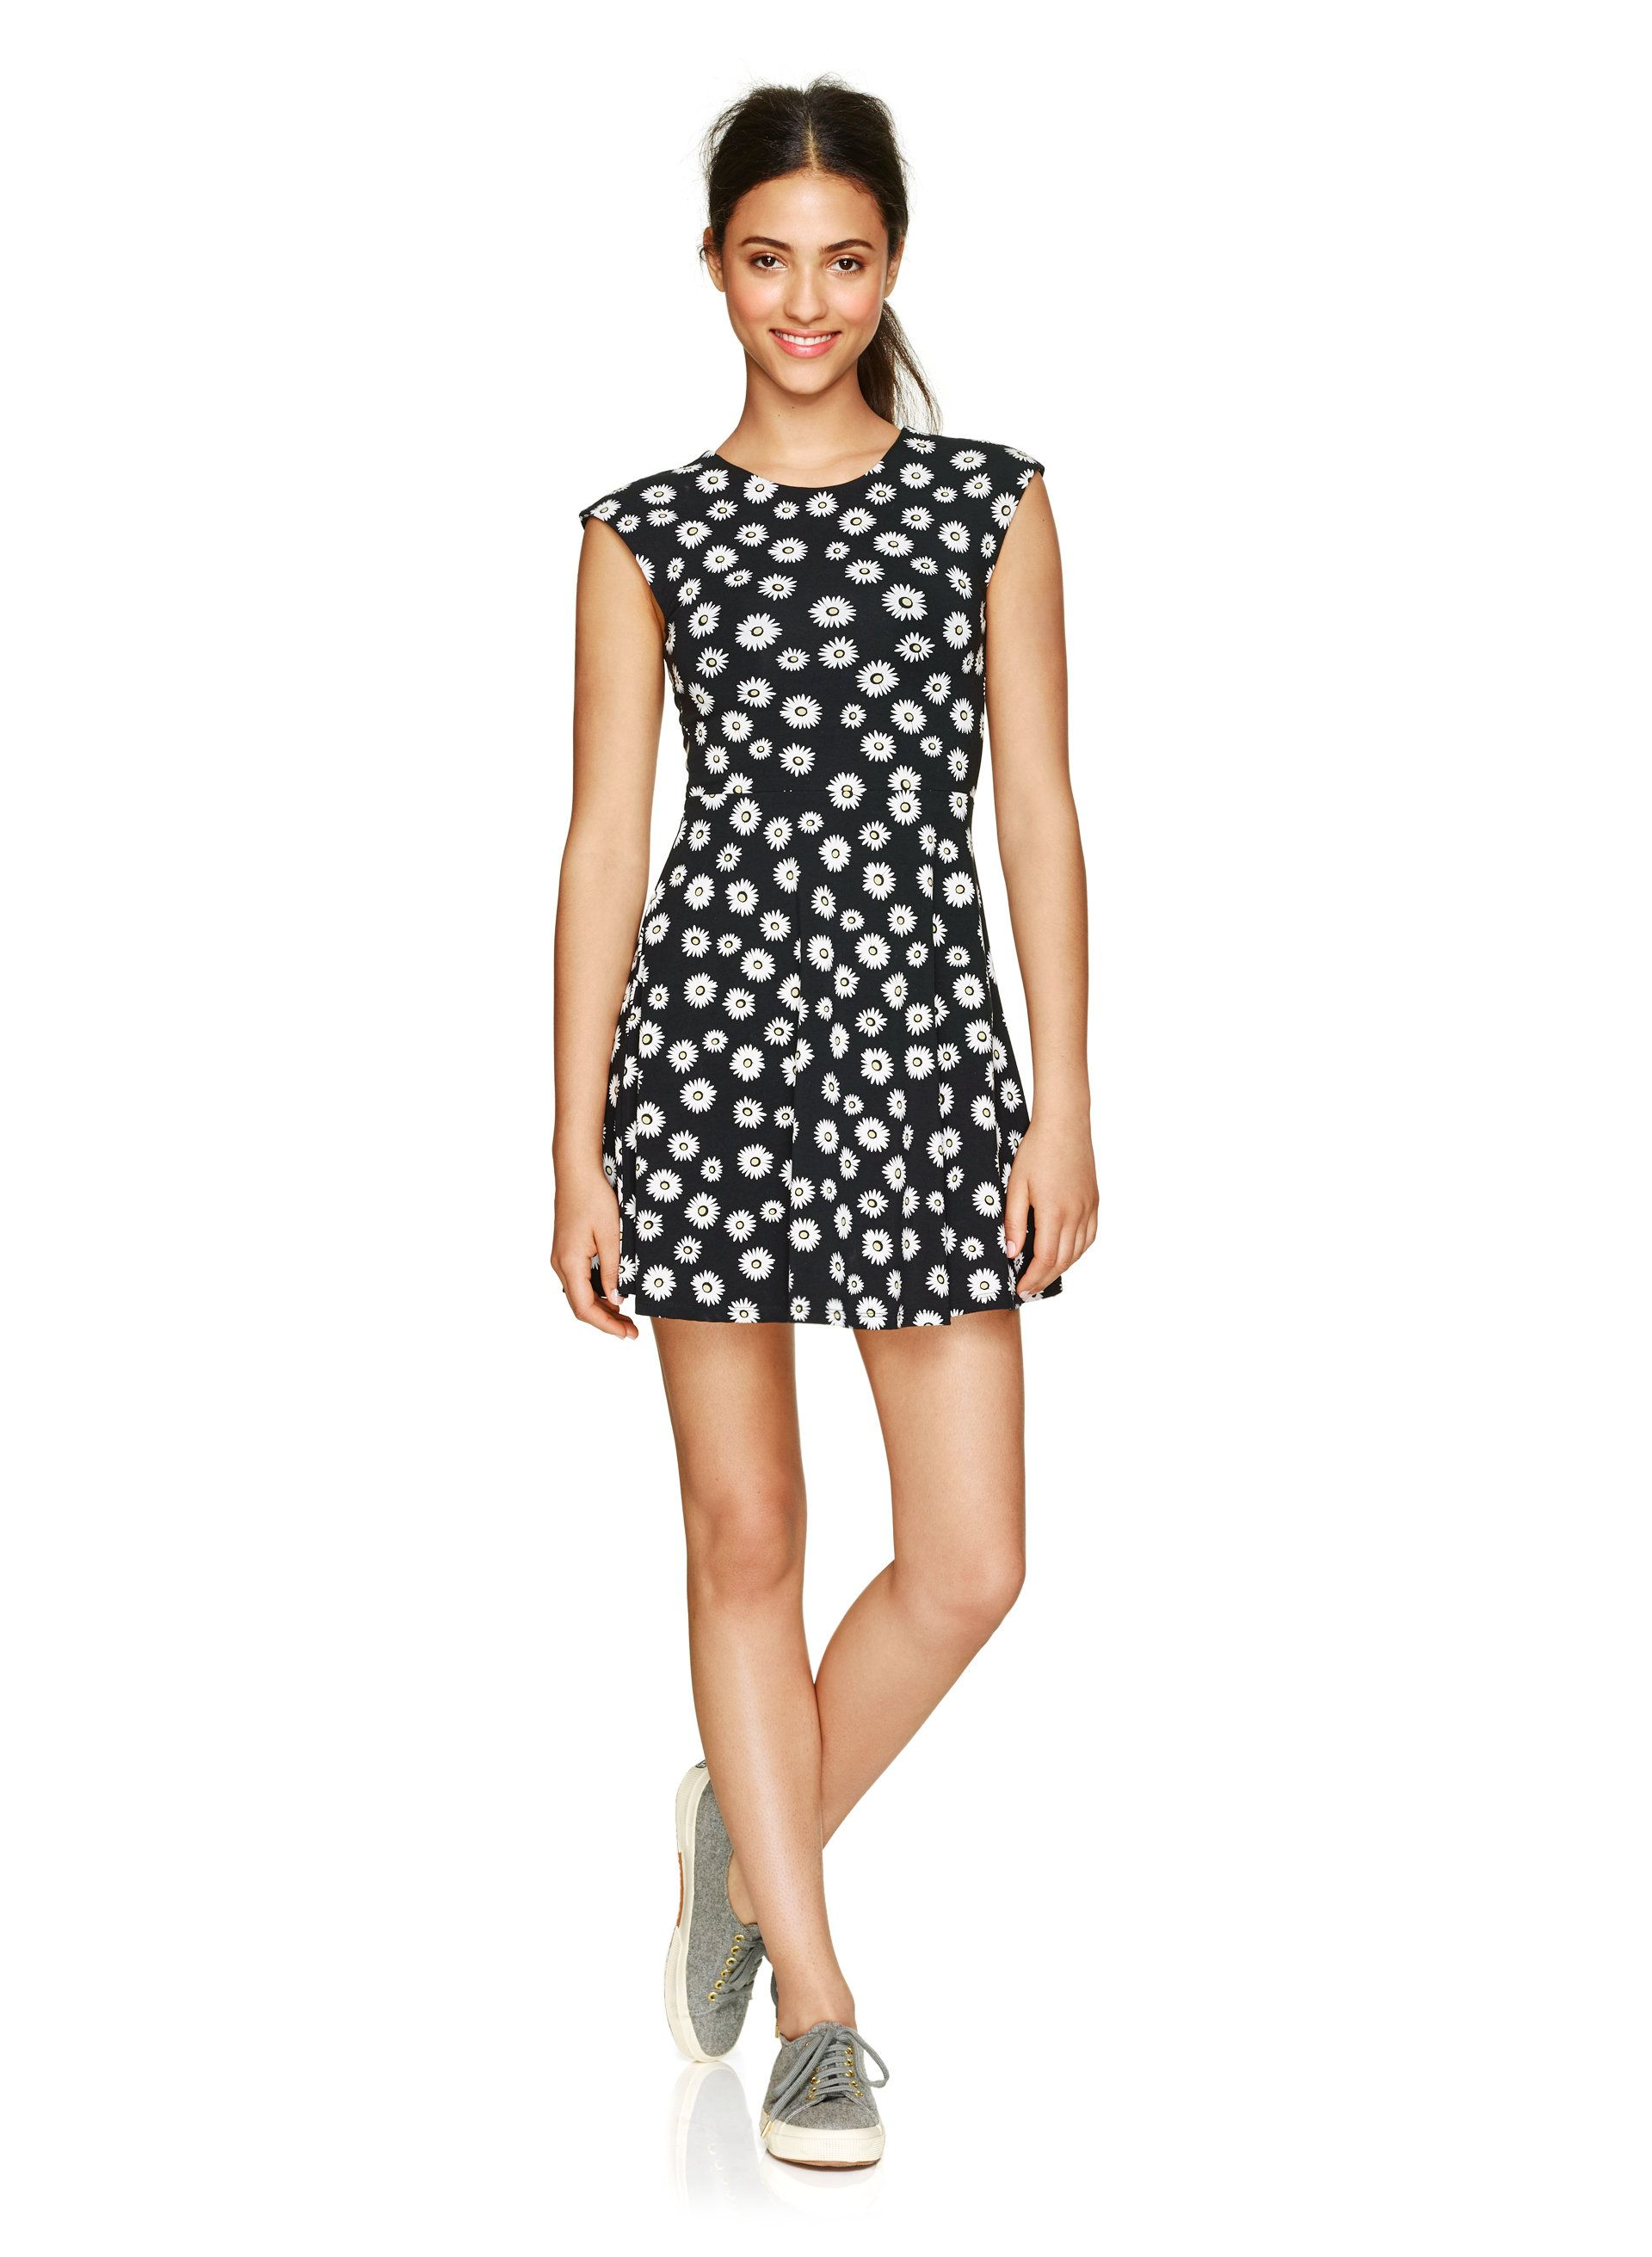 a2d4dbf5a28 Flirty stretch cotton jersey dress with a unique cut-out in back ...